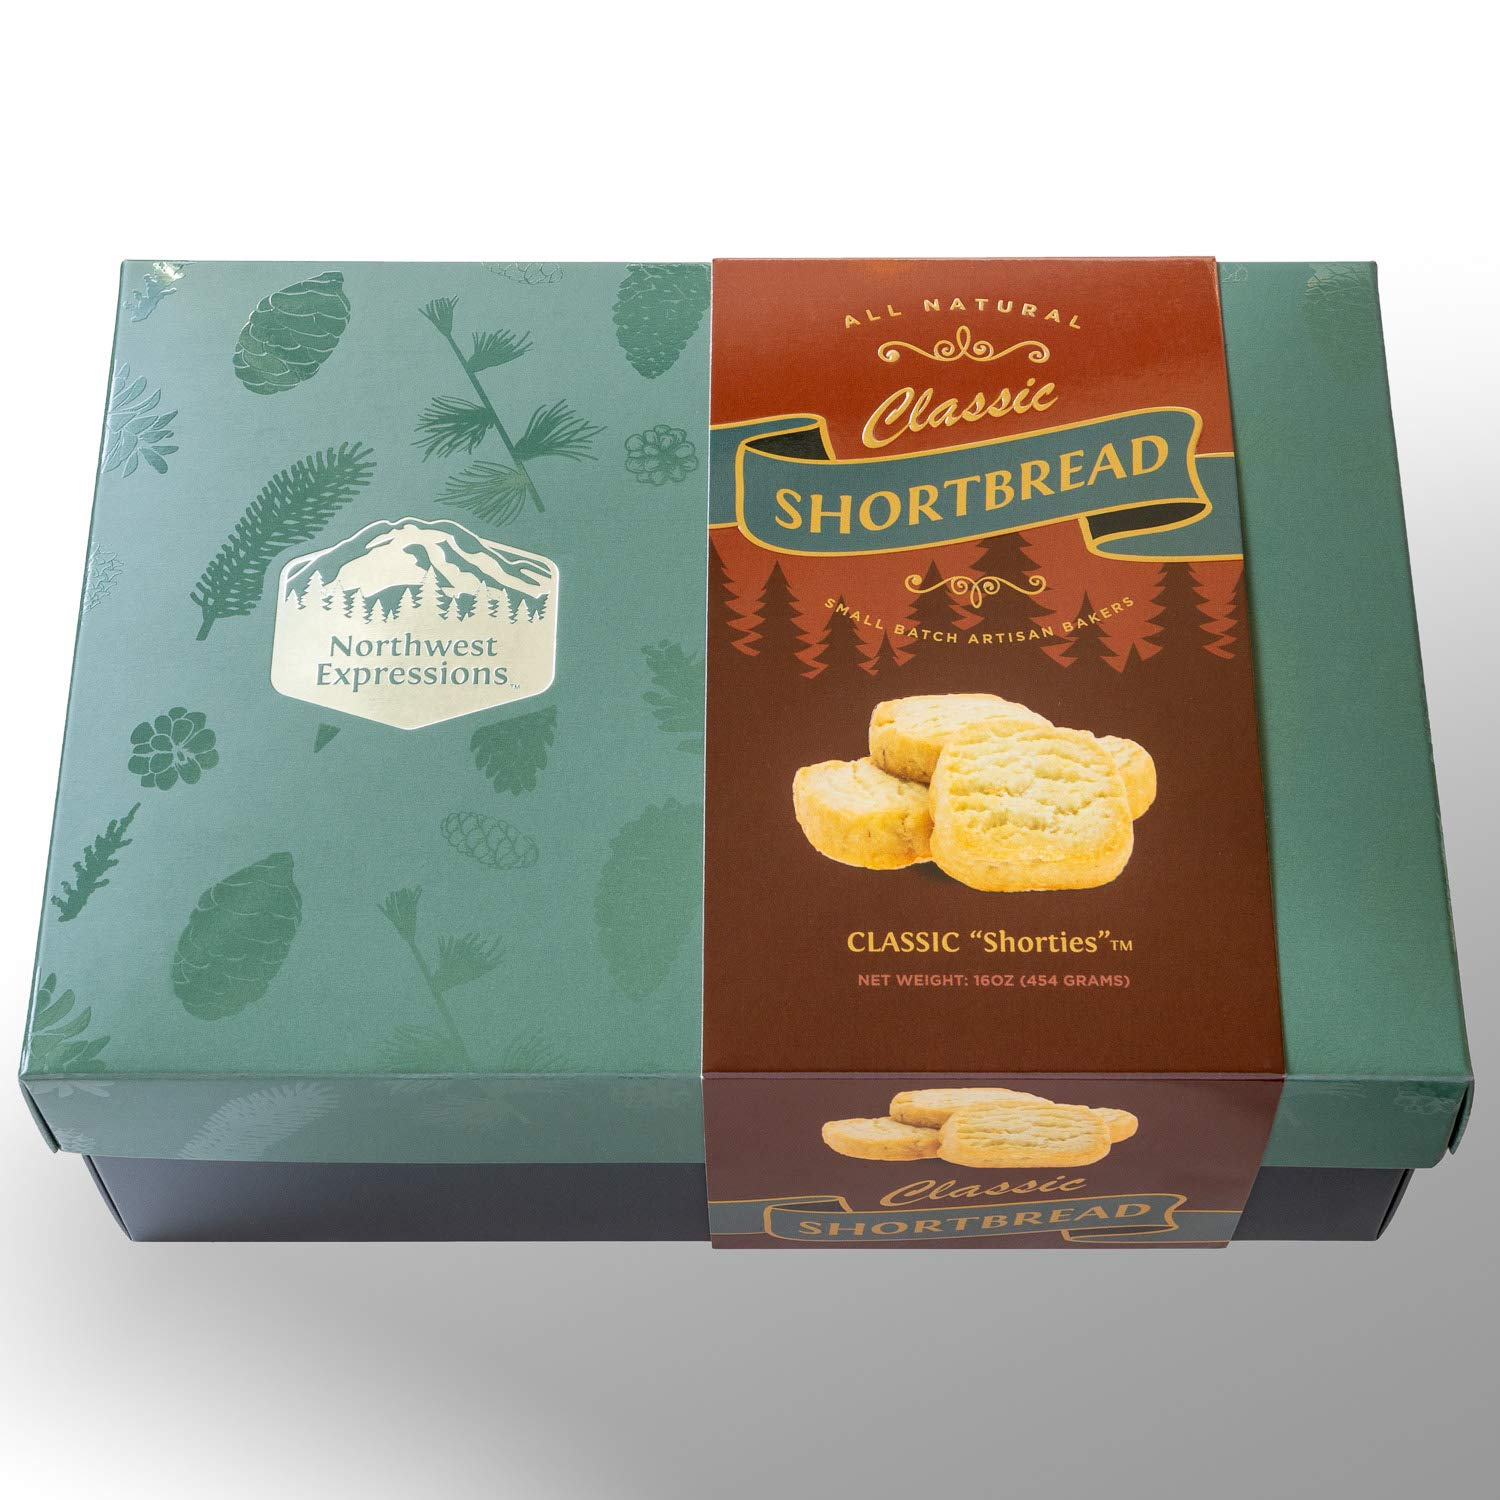 Northwest Expressions Classic Shortbread Cookies – Handmade Artisanal Scottish-Style Shortbread Biscuits – Old Fashioned, Homemade Gourmet Butter Cookies in Custom Gift Box, 16oz